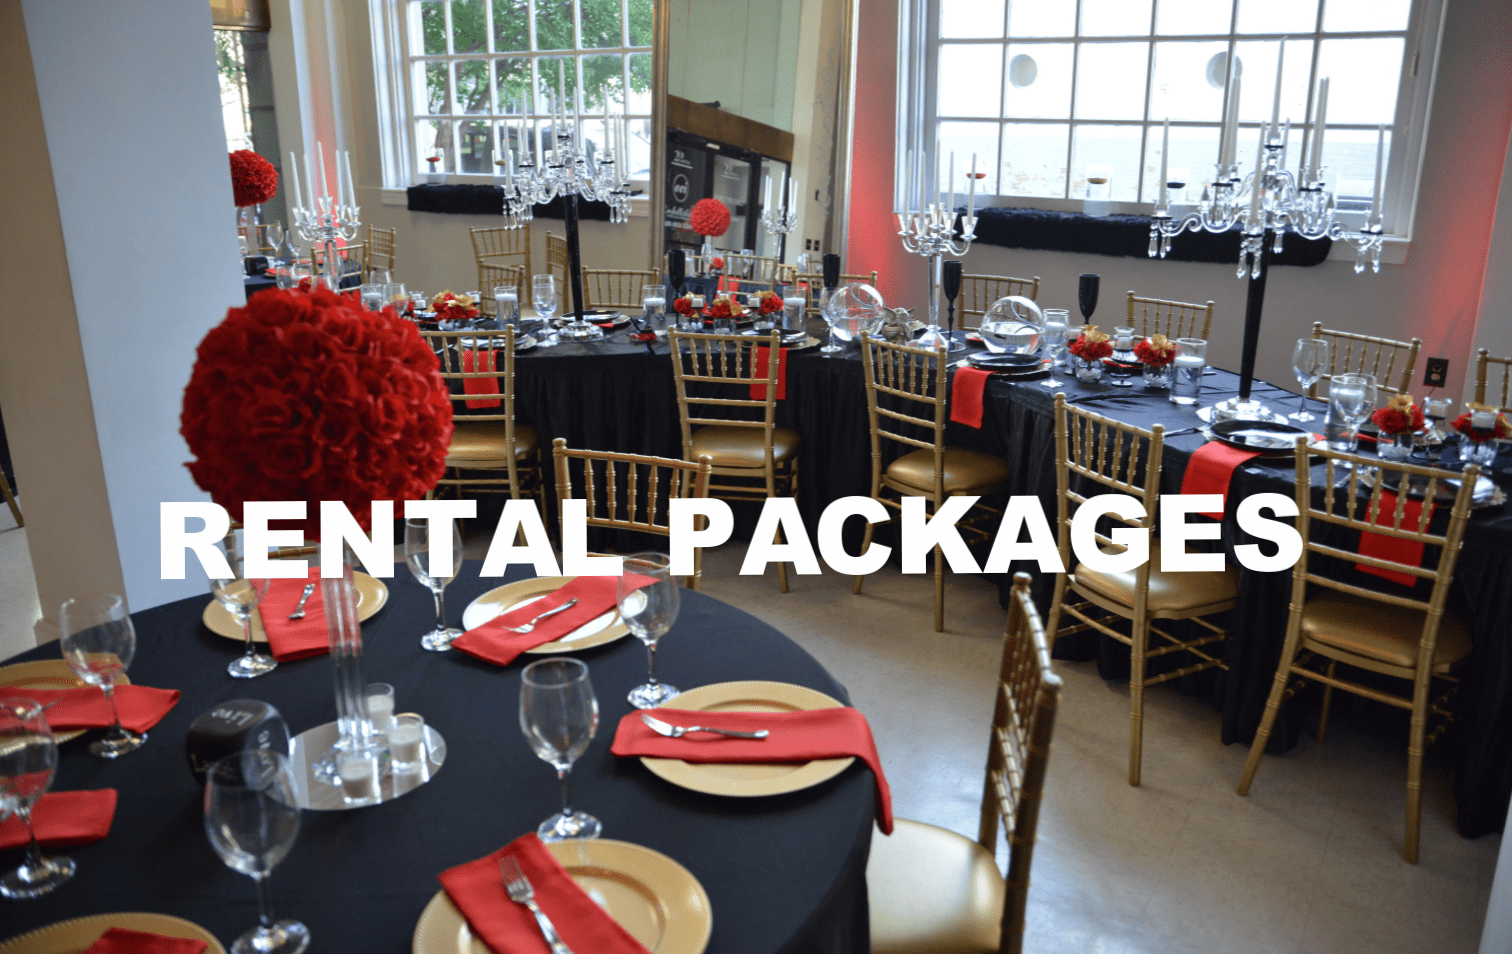 chair cover rentals jackson ms covers for parties to buy rental packages 201capitol screen shot 2018 08 18 at 8 44 01 am png